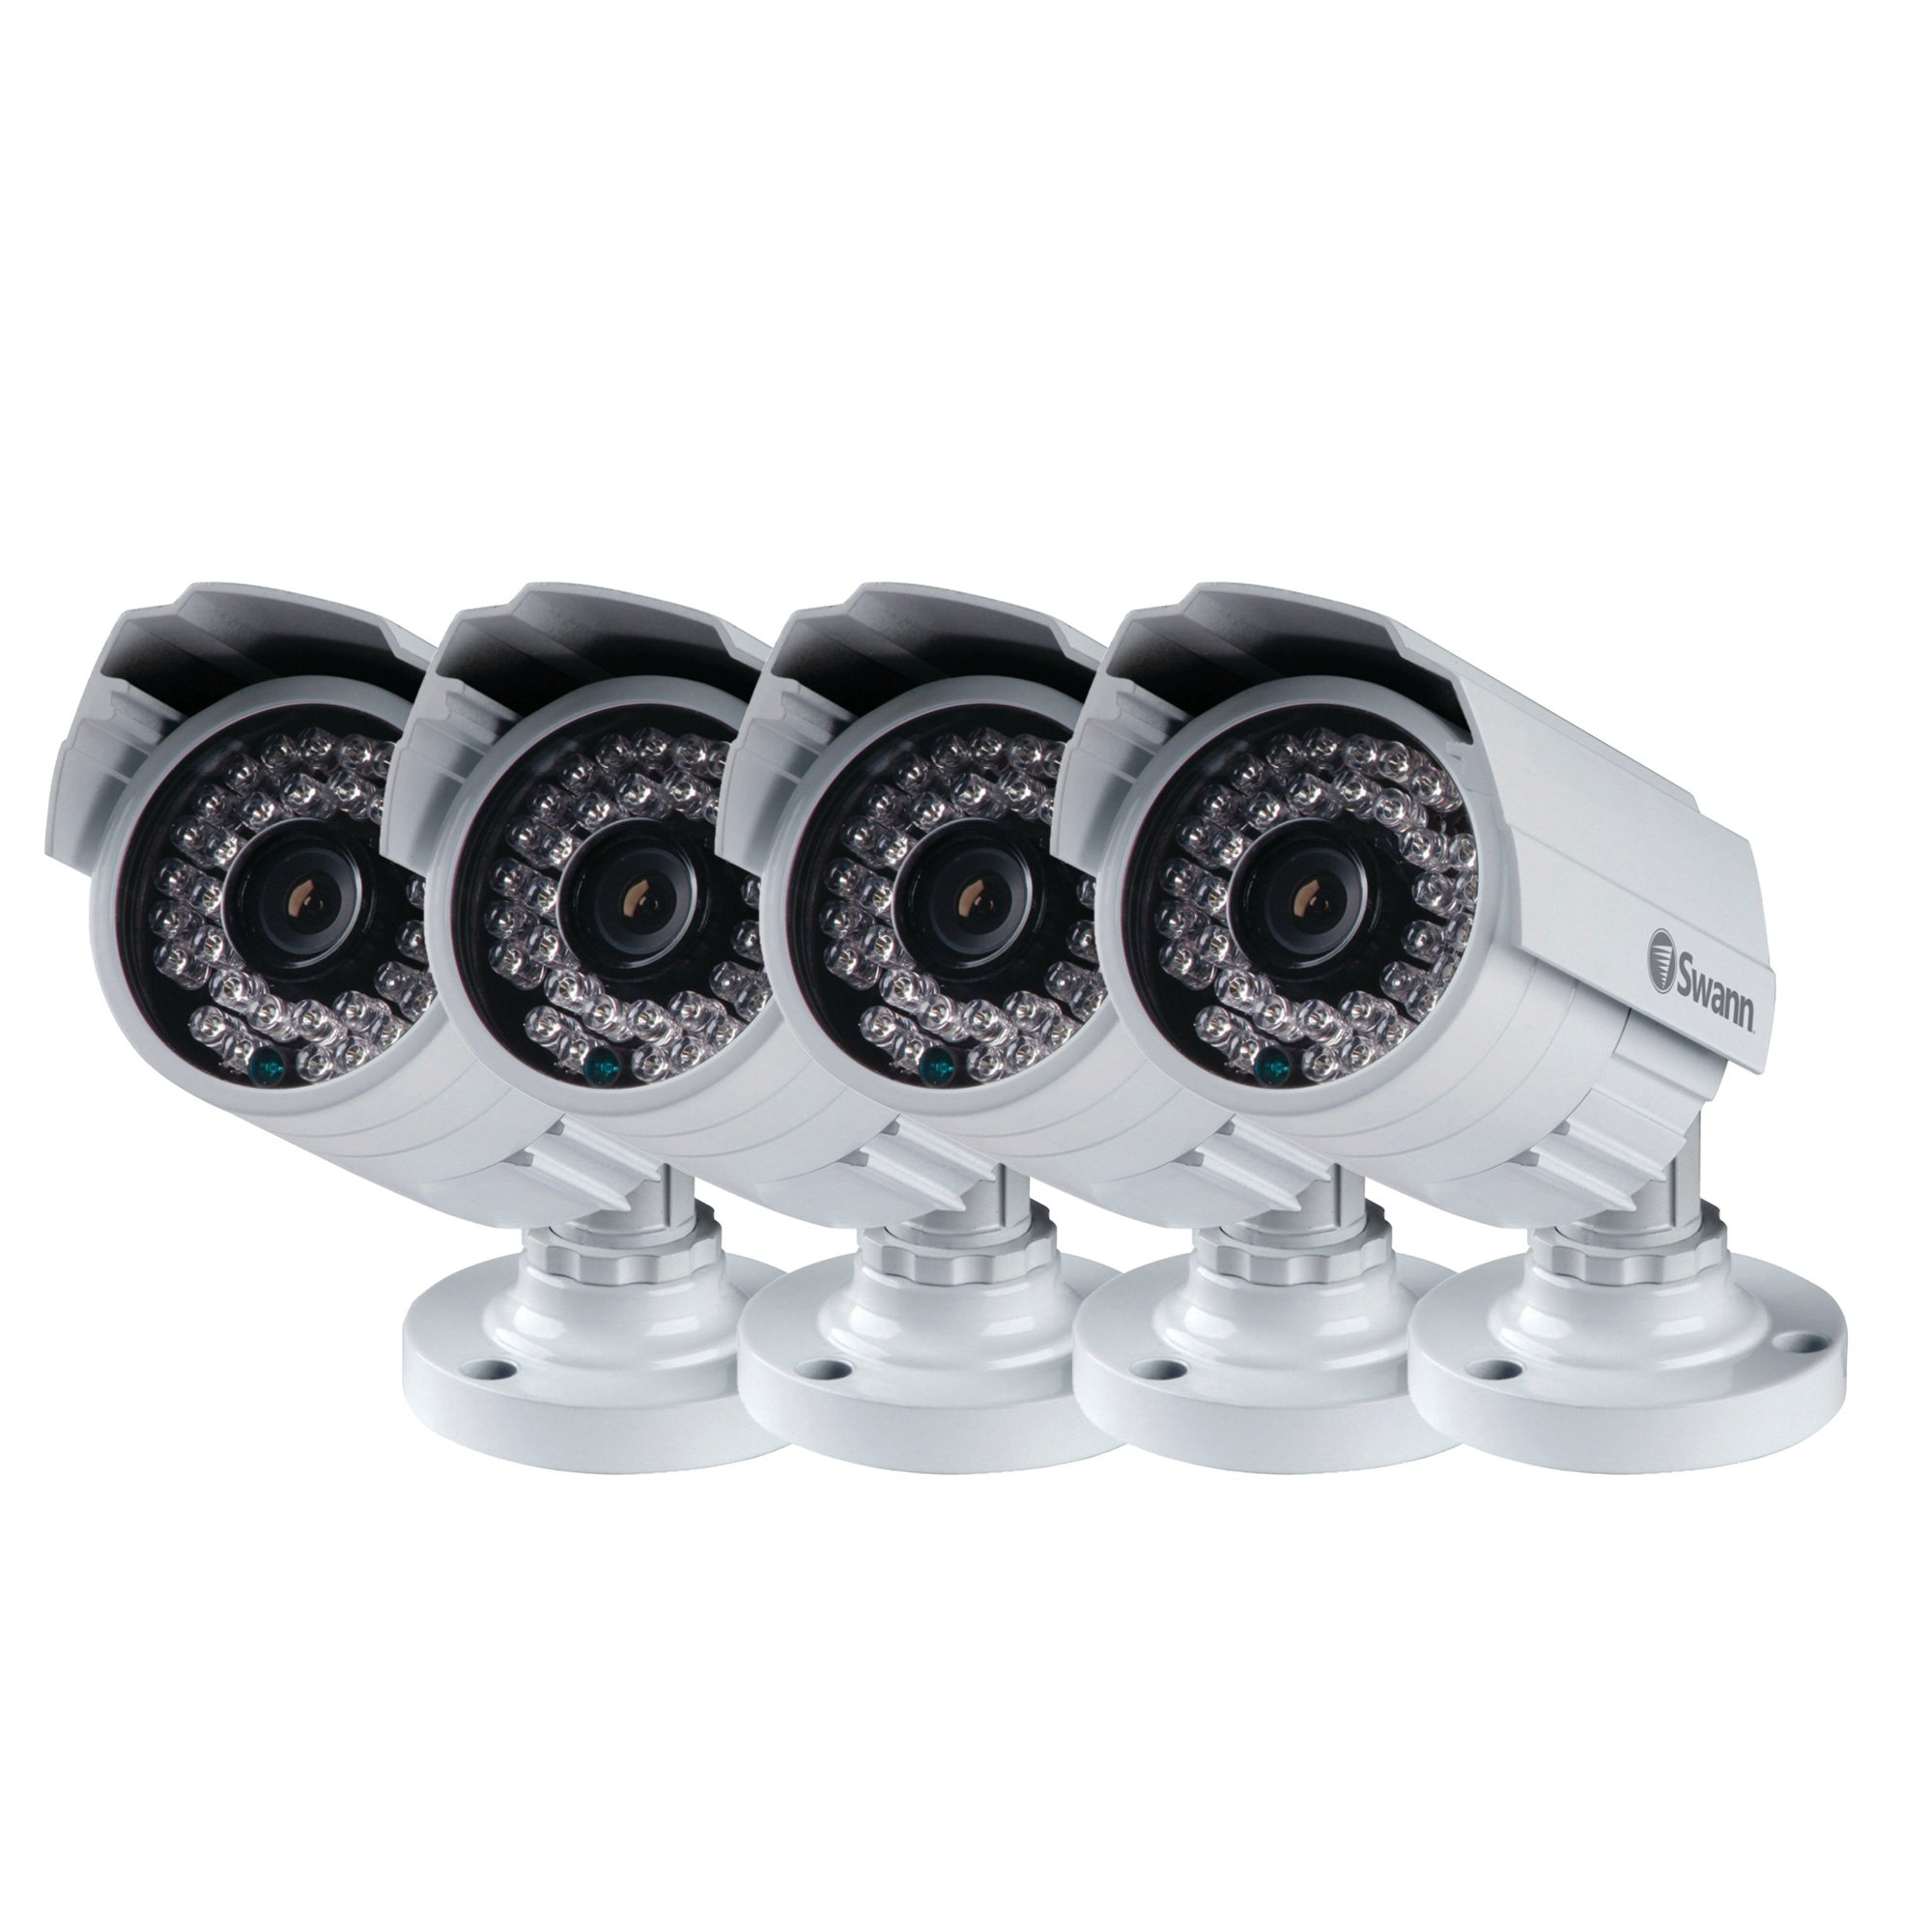 Swann SWPRO-842CAM-US-4PK 900TVL High-Resolution Day/Night Security Camera 85ft / 25m View